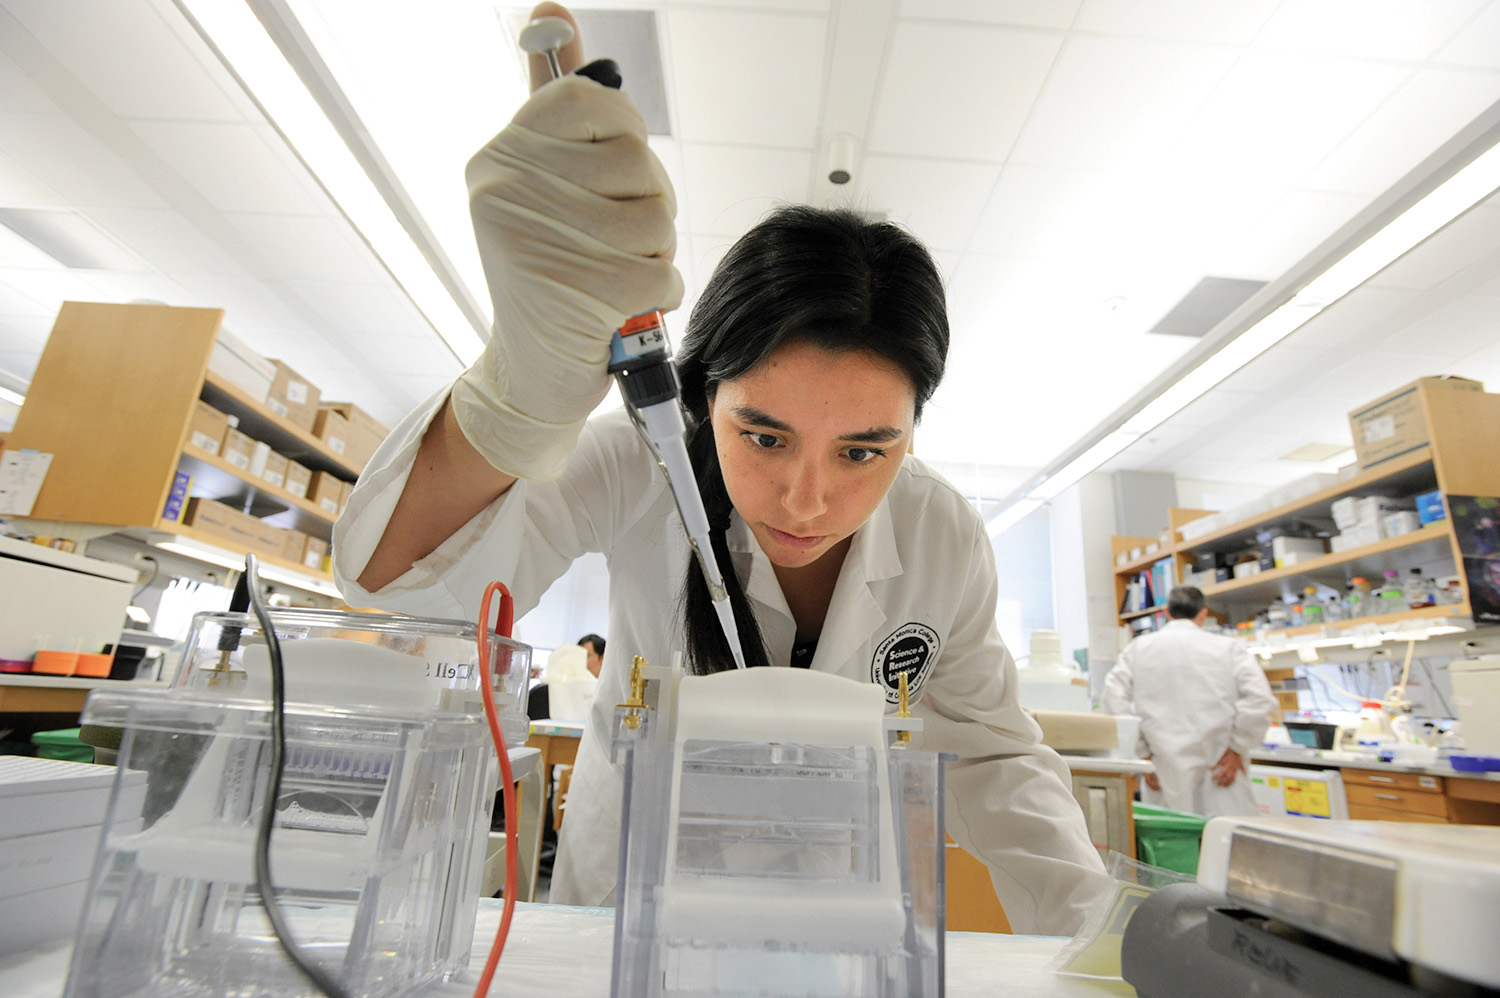 SMC student Maria Cabrera Abad works in the genetics lab at UCLA.  She is mentored by Peixiang Zhang, PhD Assistant Researcher, Department of Human Genetics, UCLA.  Maria hopes to attend UCLA in the future.  Photo by Amy Gaskin